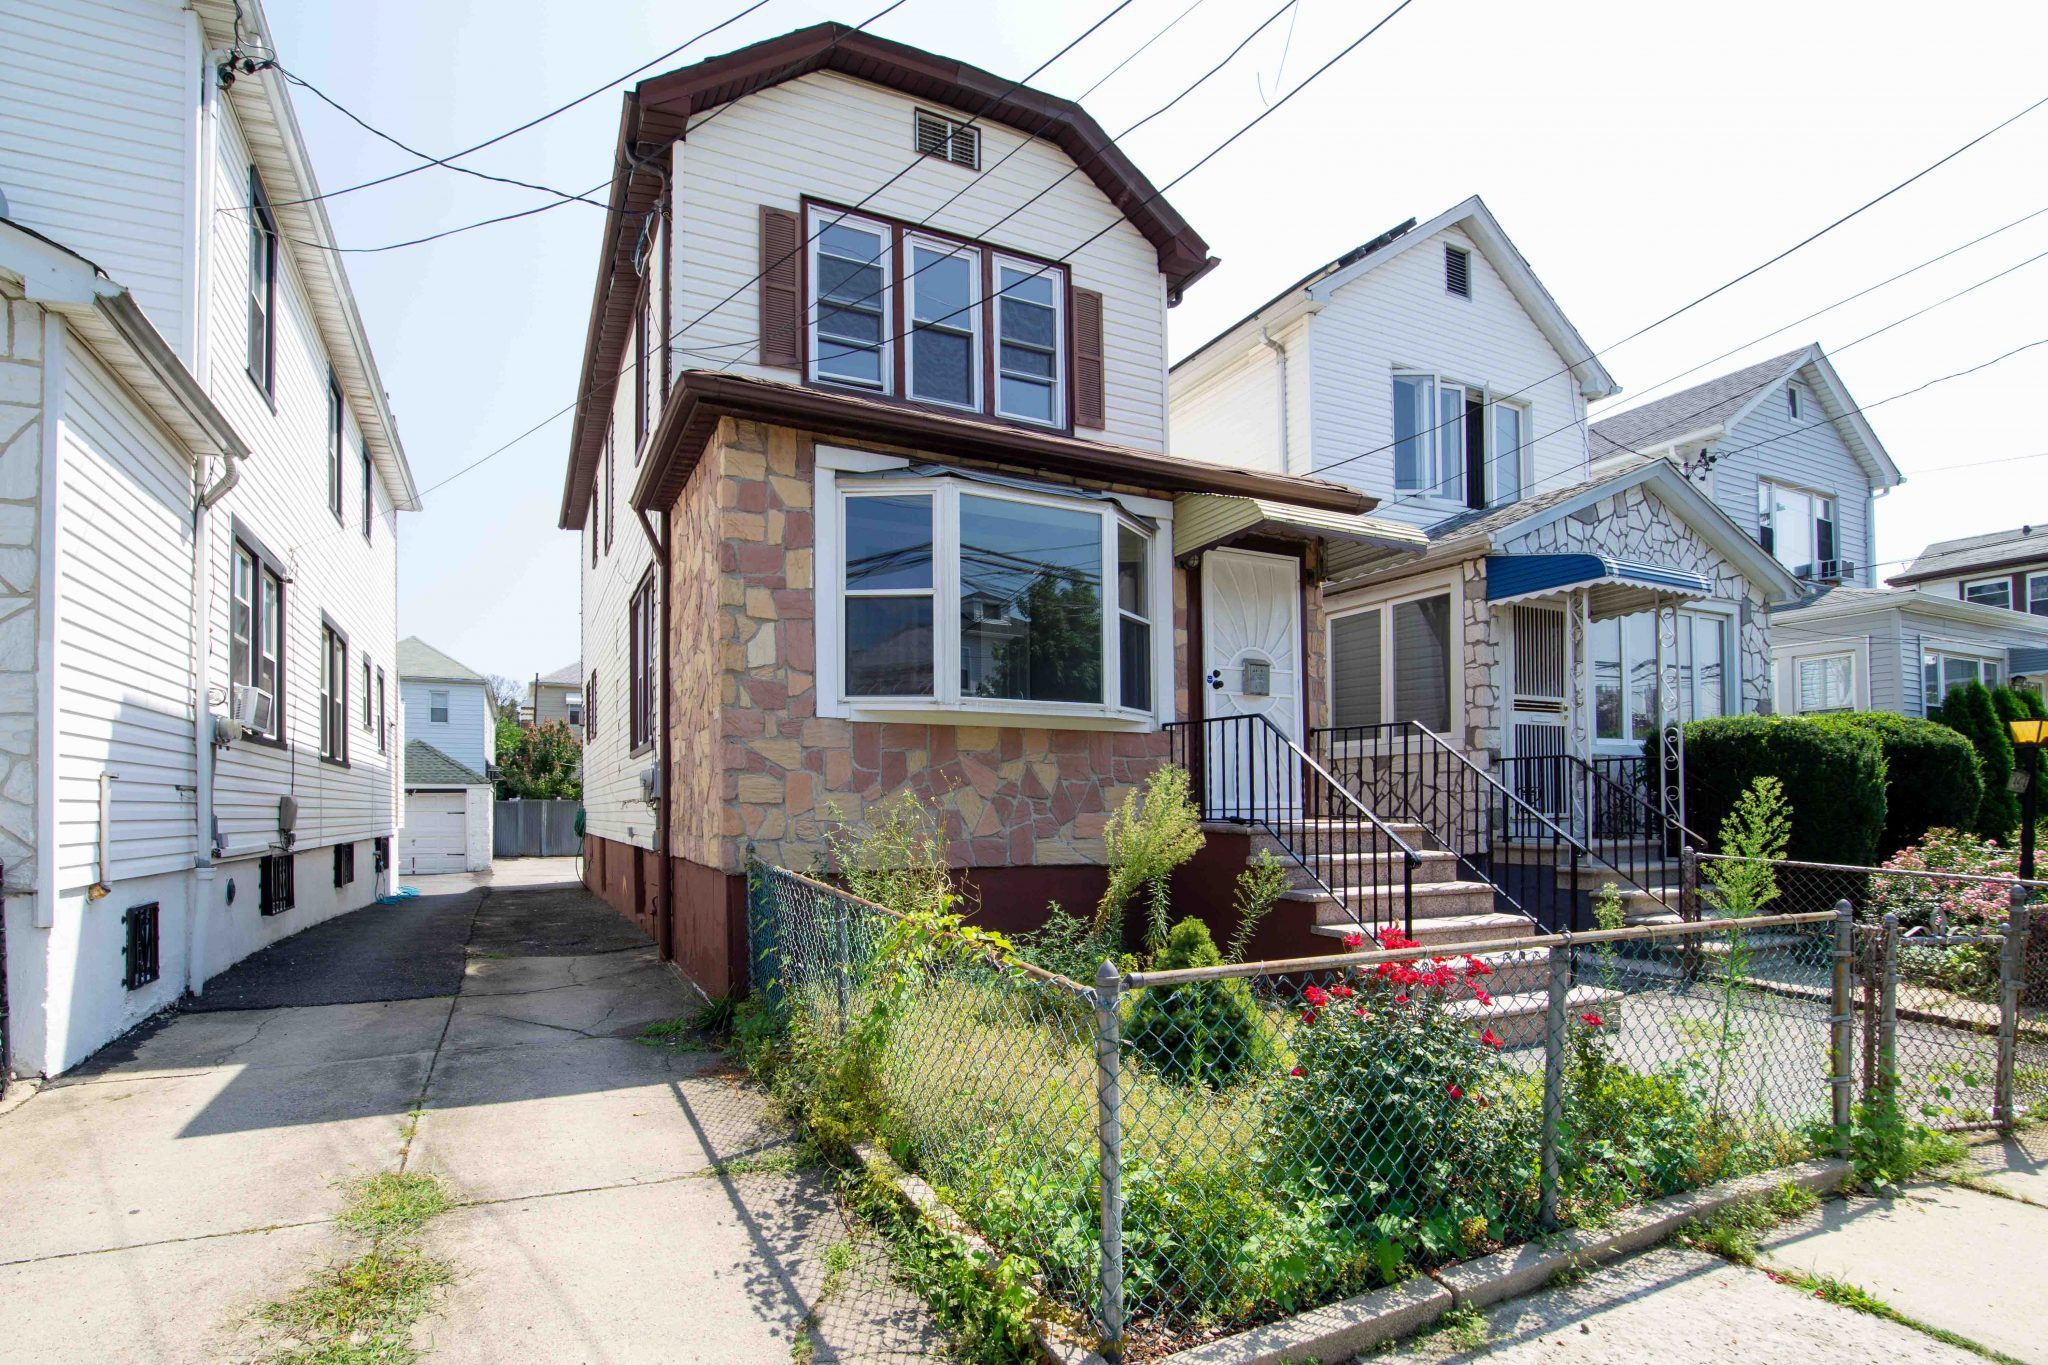 Two Family For Sale in Wakefield Bronx NY 10466. Fully Detached Property That Has it ALL!